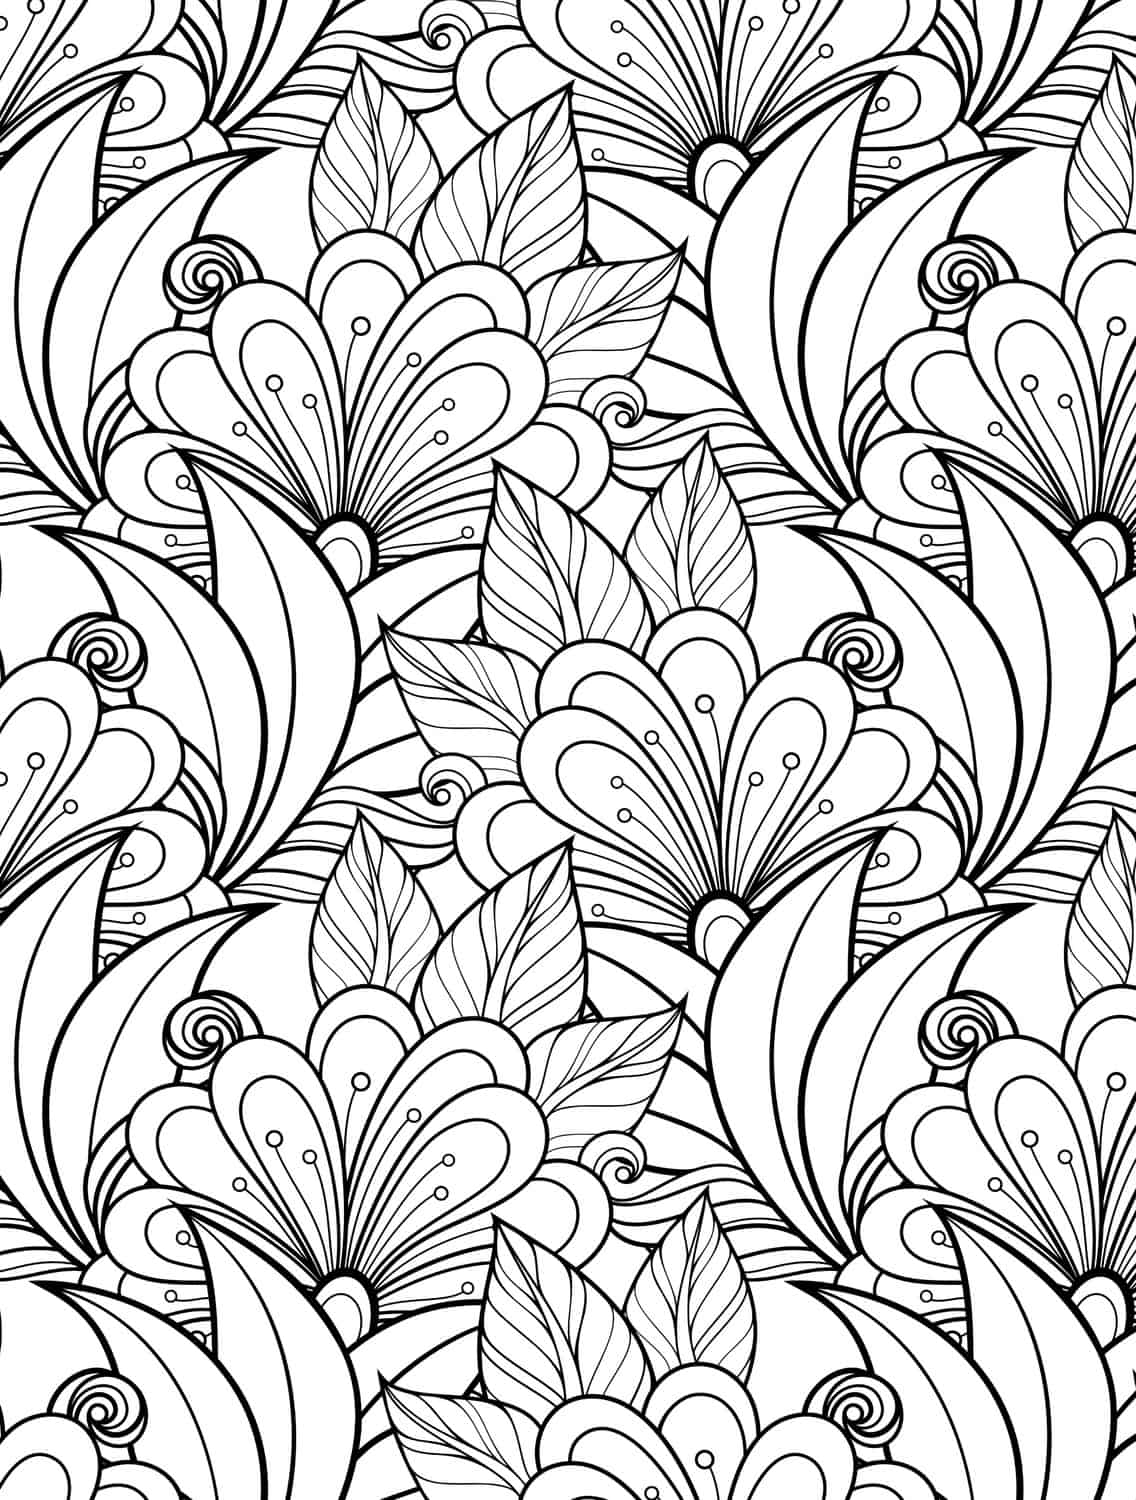 Printable coloring books - Gorgeous Free Printable Coloring Book Pages Web